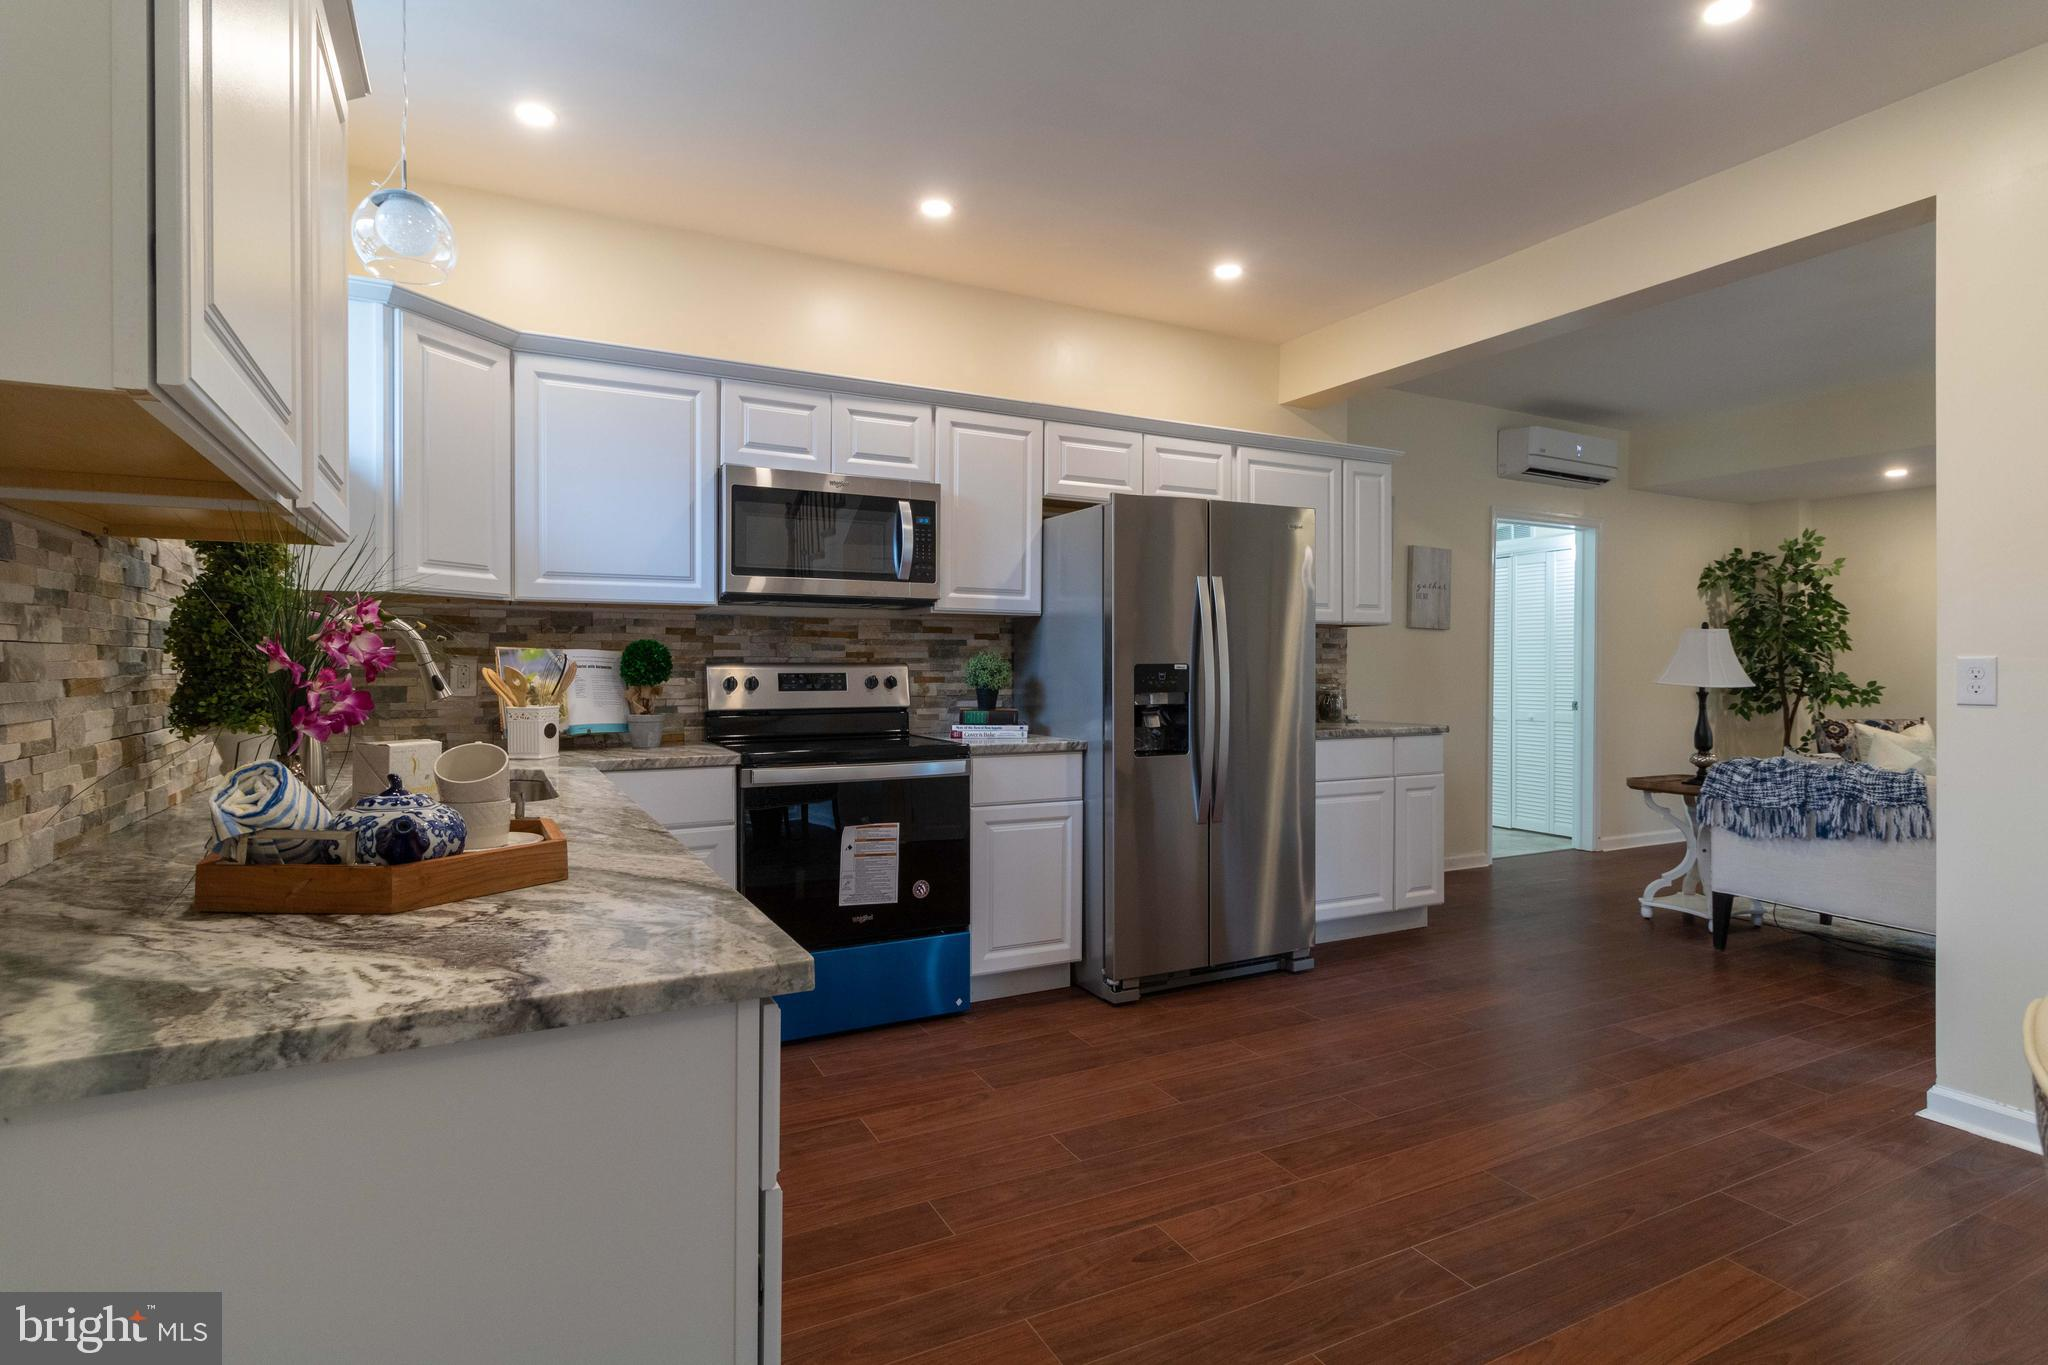 Welcome home to this beautiful newly renovated hidden Gem  located in the much desirable Appoquinimink school district in Townsend.  This home offers 3 BR and 3 full baths: an open floor plan which is excellent for entertaining; Spacious Kitchen is designed with granite counter tops, custom back splash ,cabinetry & energy efficient, stainless steel appliances   ;Main floor enclosed laundry area:  Generously sized bedrooms with  roof deck off the master bedroom ; Completely updated bathrooms with beautifully designed custom tile in each bathroom. Did I mention this home includes parcel #1401900165 of 2.67 acres and parcel #1401900132 of 2 acres for a total of 13.21 acres.  sits on over 13 acres of land with private pond, & huge outbuilding for extra storage , the ultimate man cave for you and the guys  or new luxurious she shed for the ladies! These decisions can be yours ...Don't Miss Out On the Opportunity to call this your new home.!